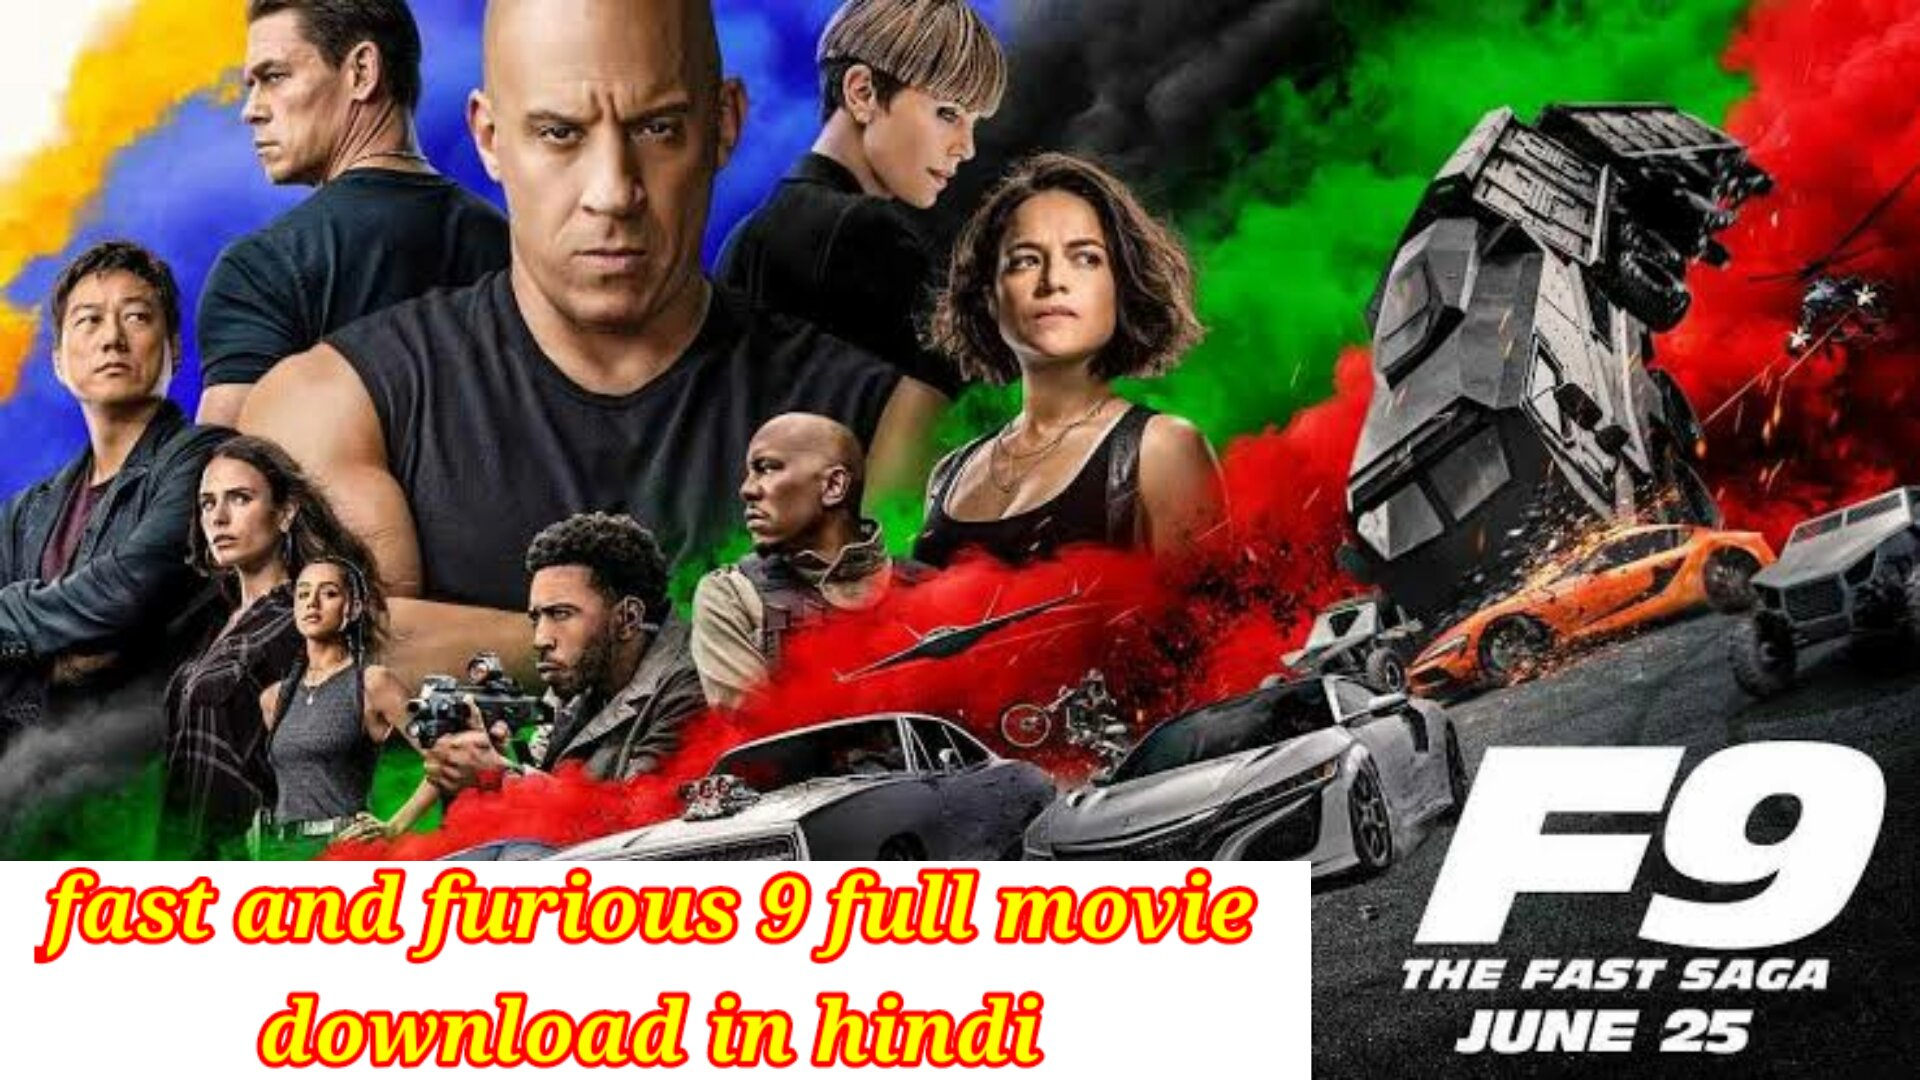 fast and furious 9 full movie download in hindi 720p moviesflix